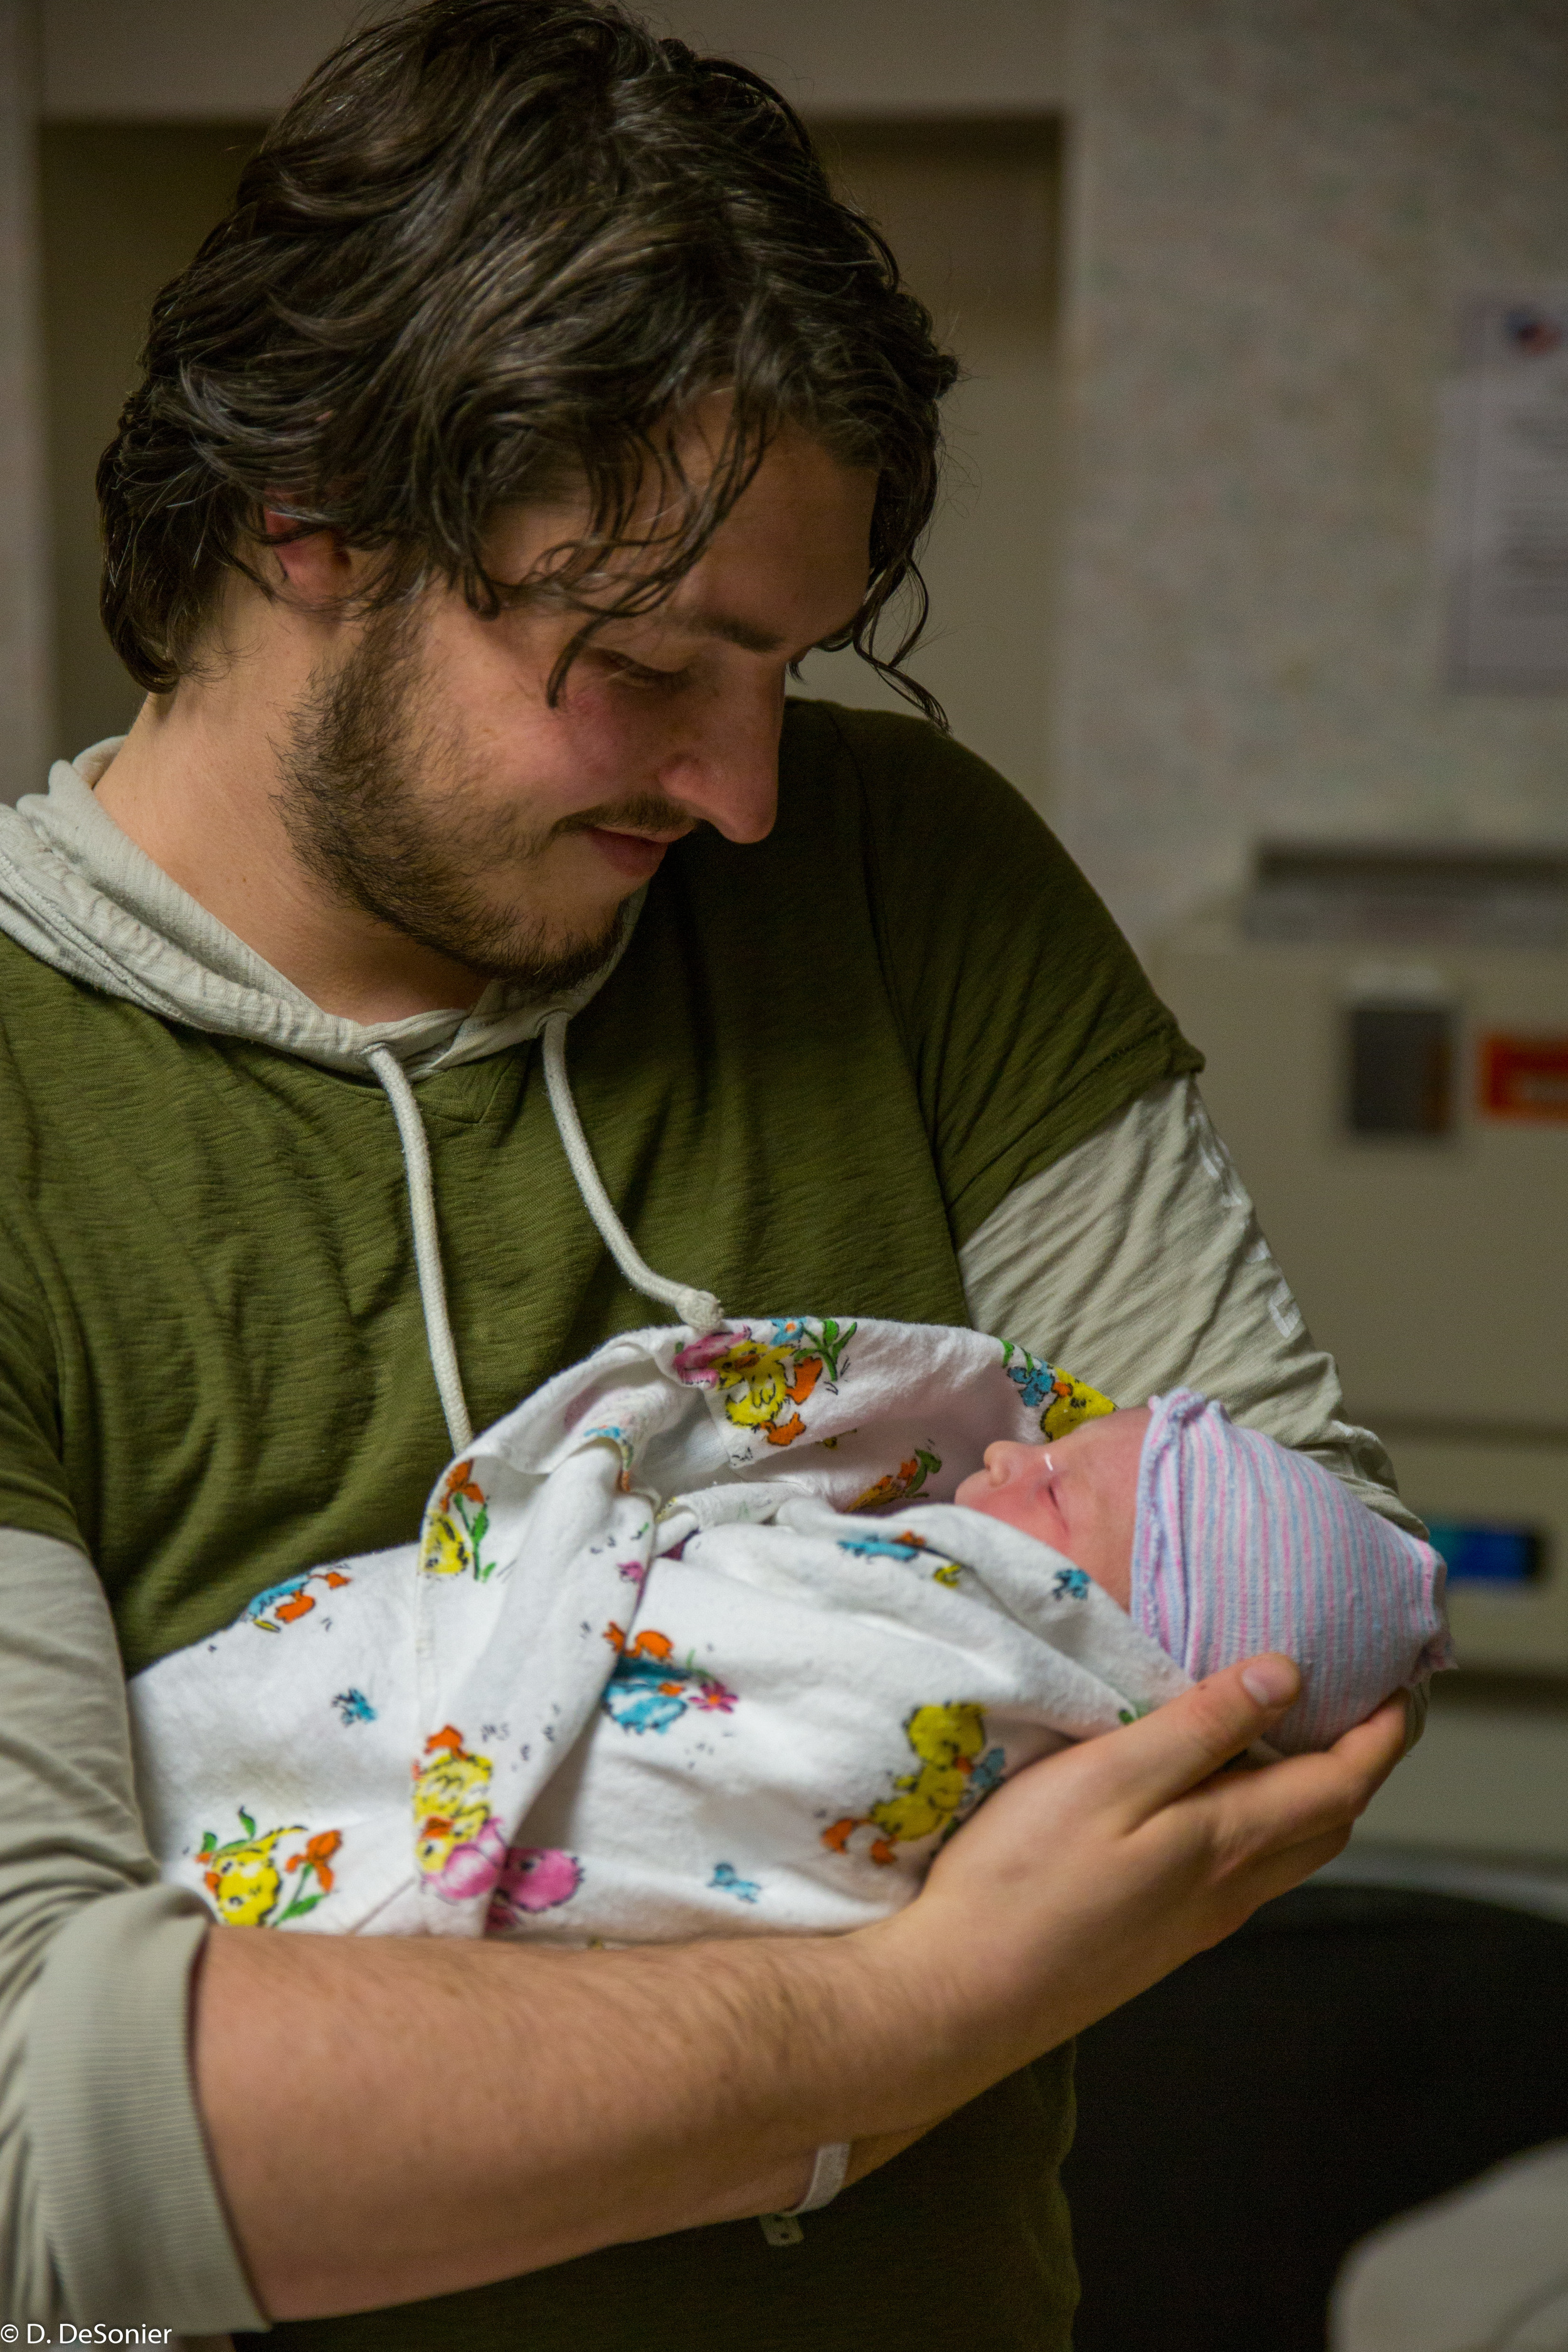 Josh and 1-hour-old daughter!